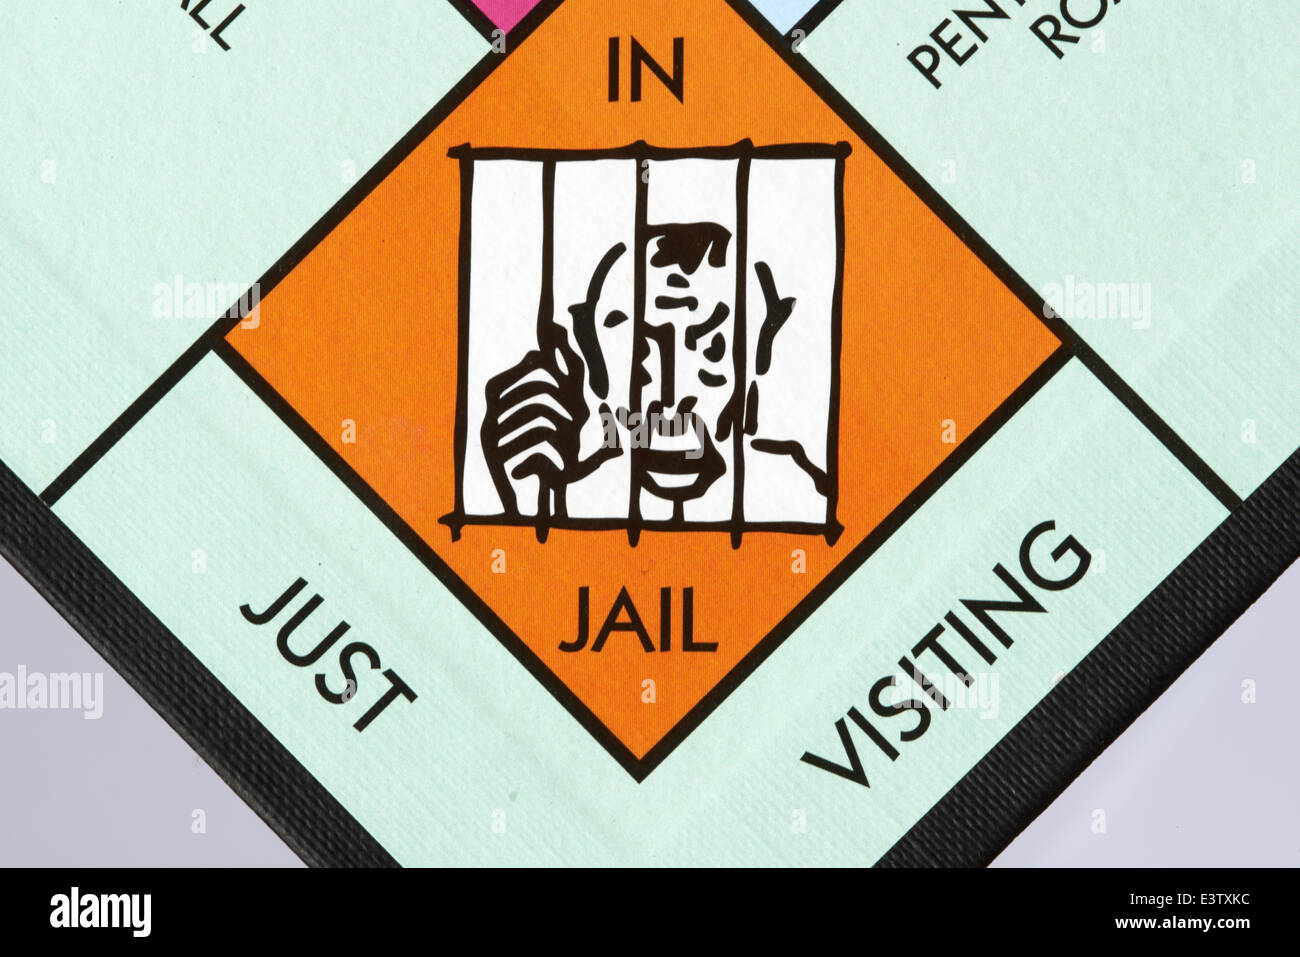 In jail just visiting space on a Monopoly Game Board Stock Photo - Alamy